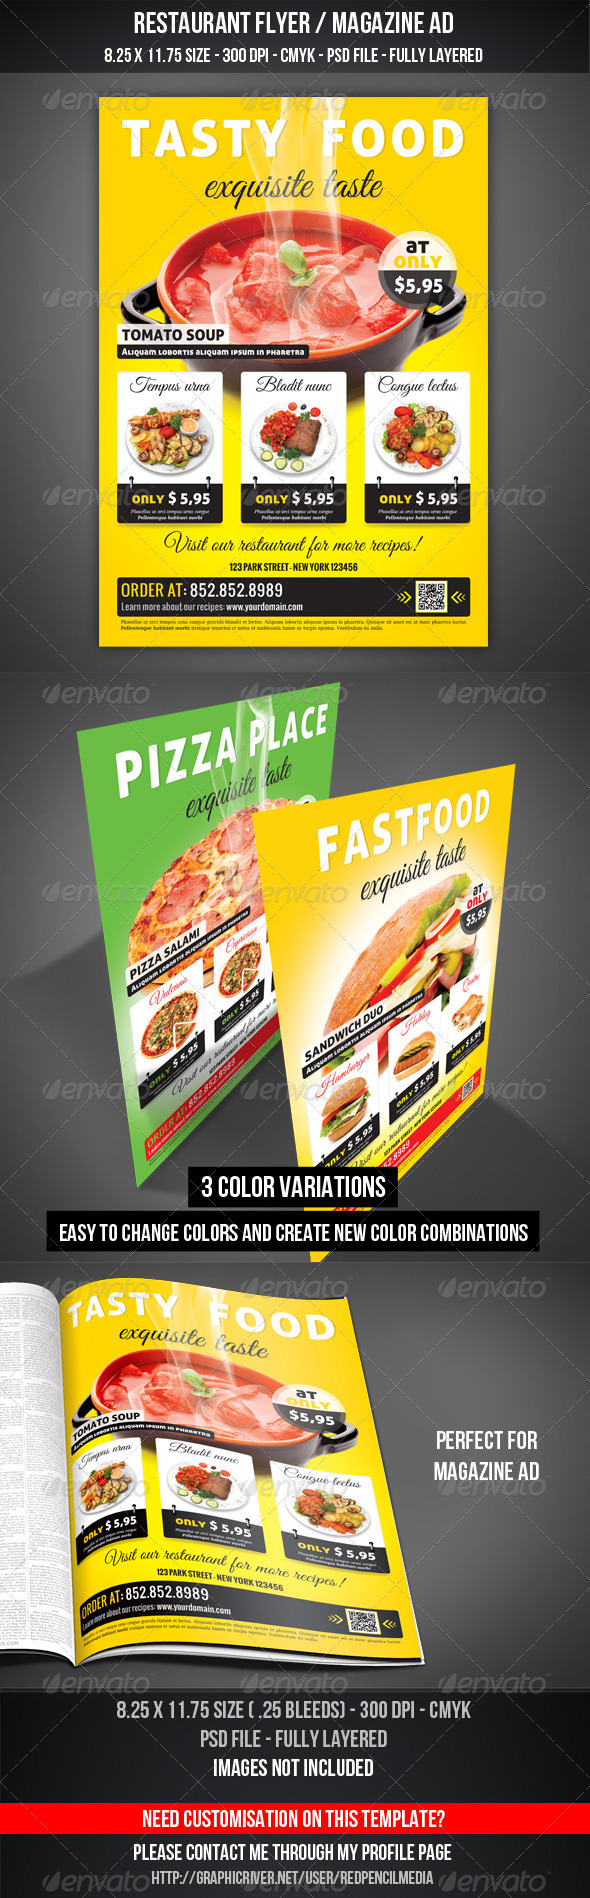 GraphicRiver Restaurant Flyer Magazine AD 3296058